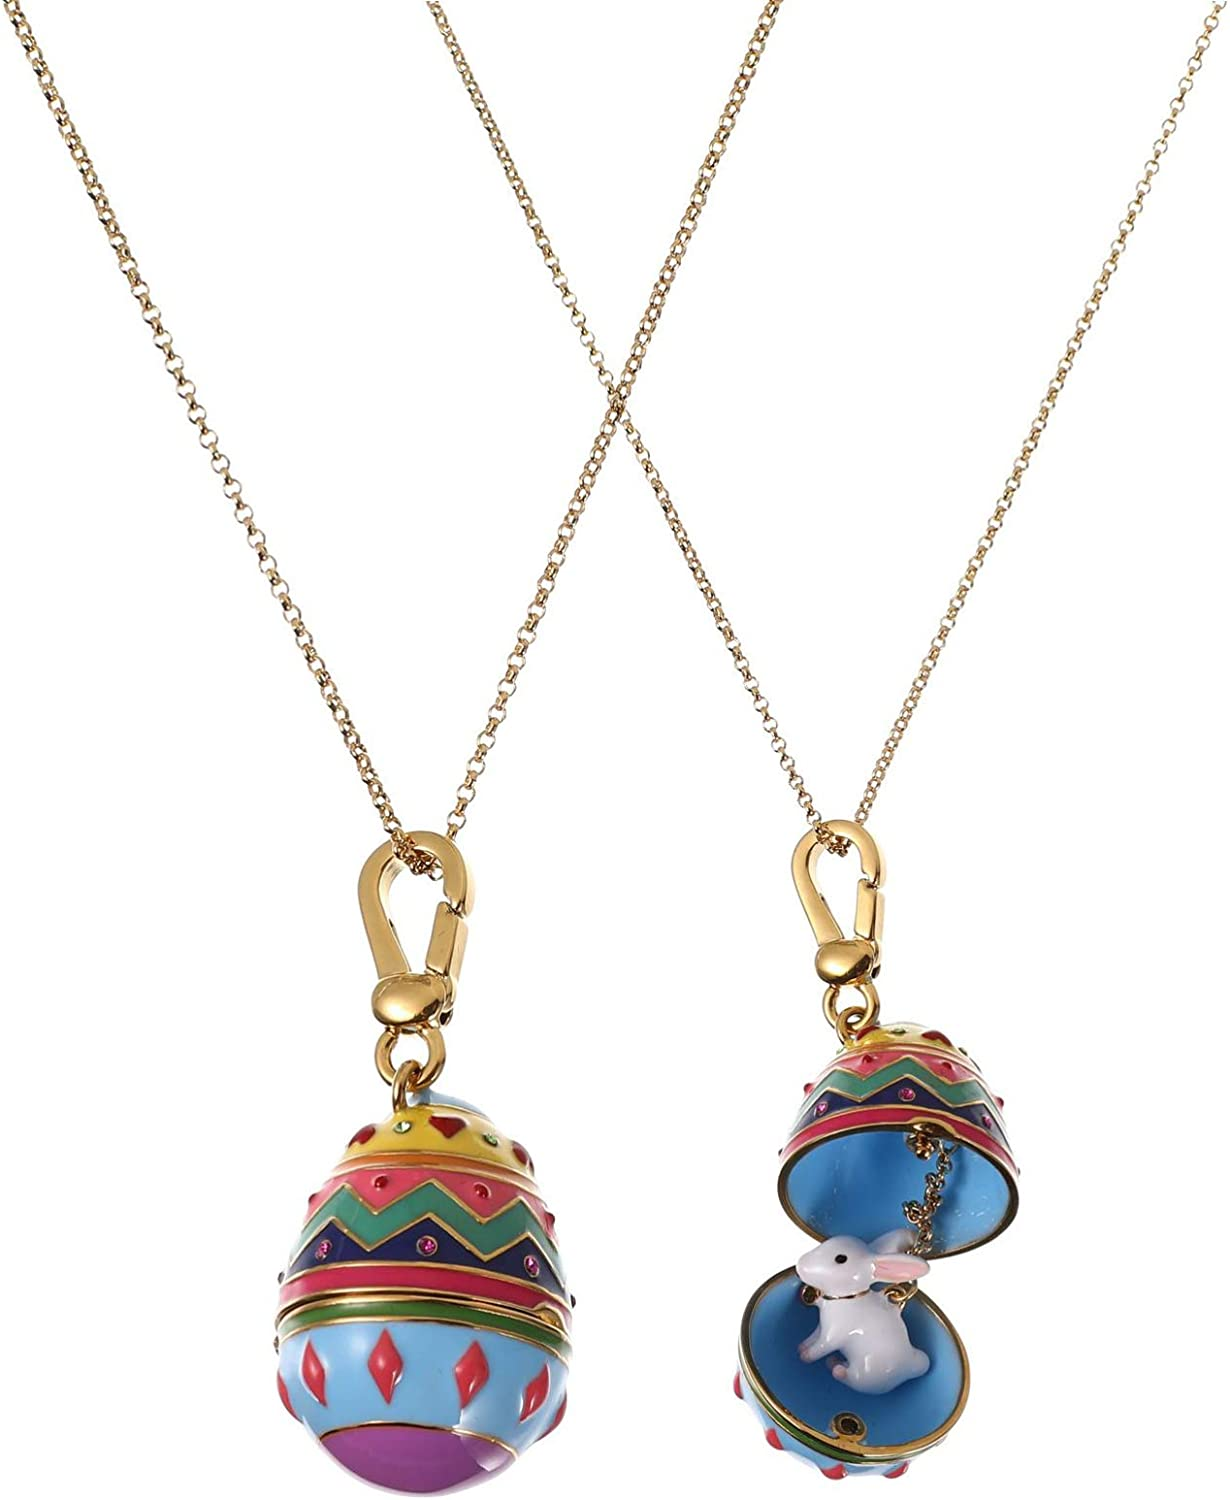 BESTOYARD Easter バーゲンセール Egg 正規激安 Necklace 18k Charm with Colorful